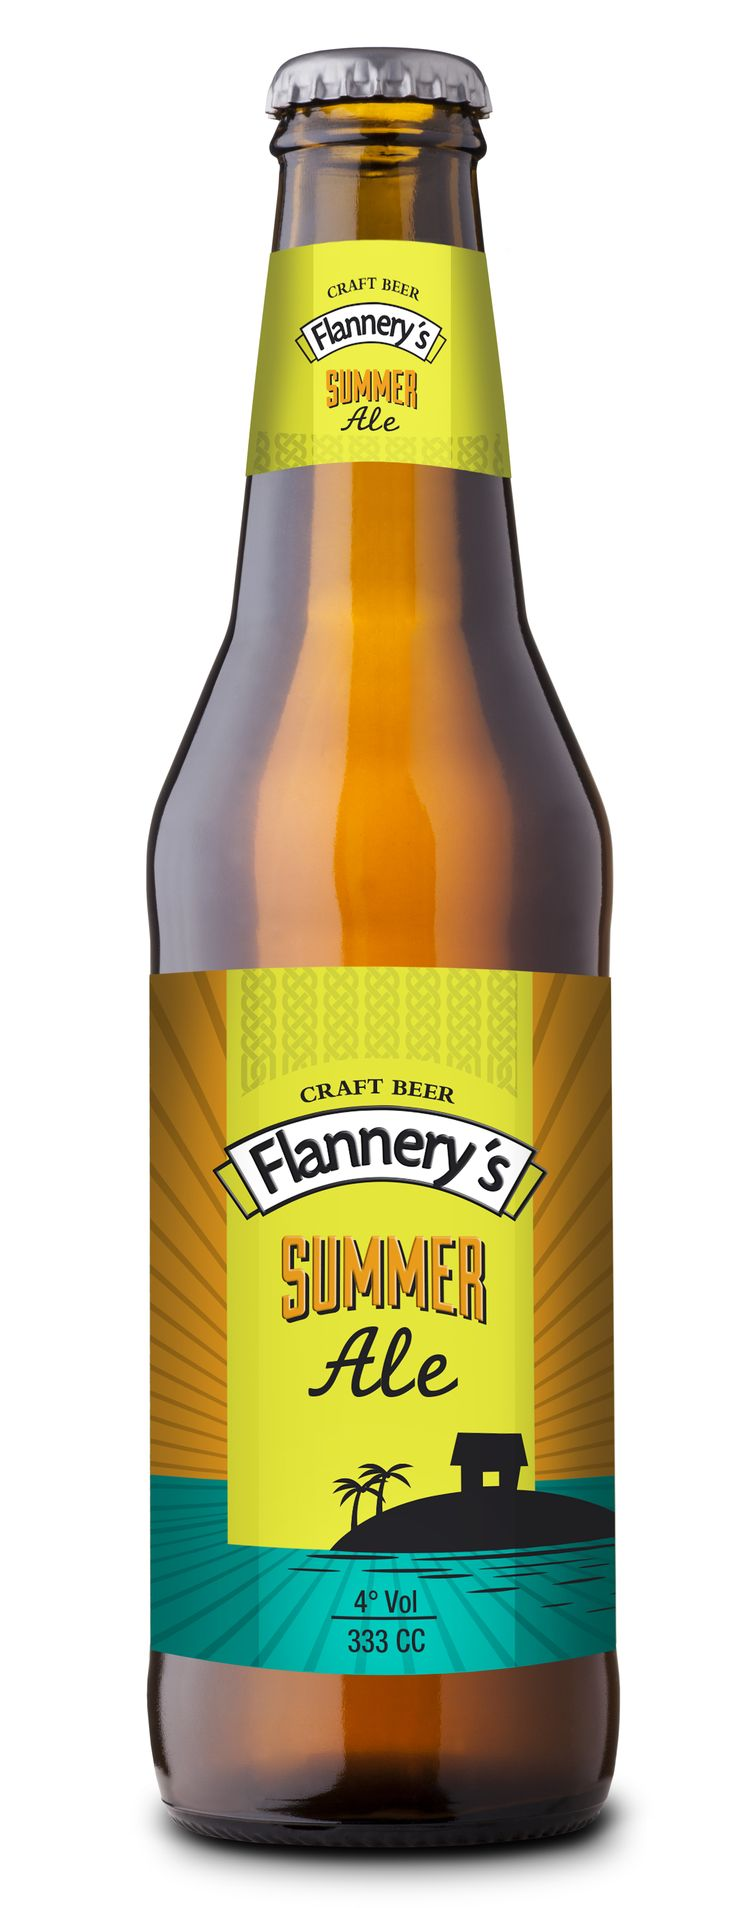 Flannery's Summer Ale #craft #beer #craftbeer #cerveza #artesanal #Flannerys #Summer Ale